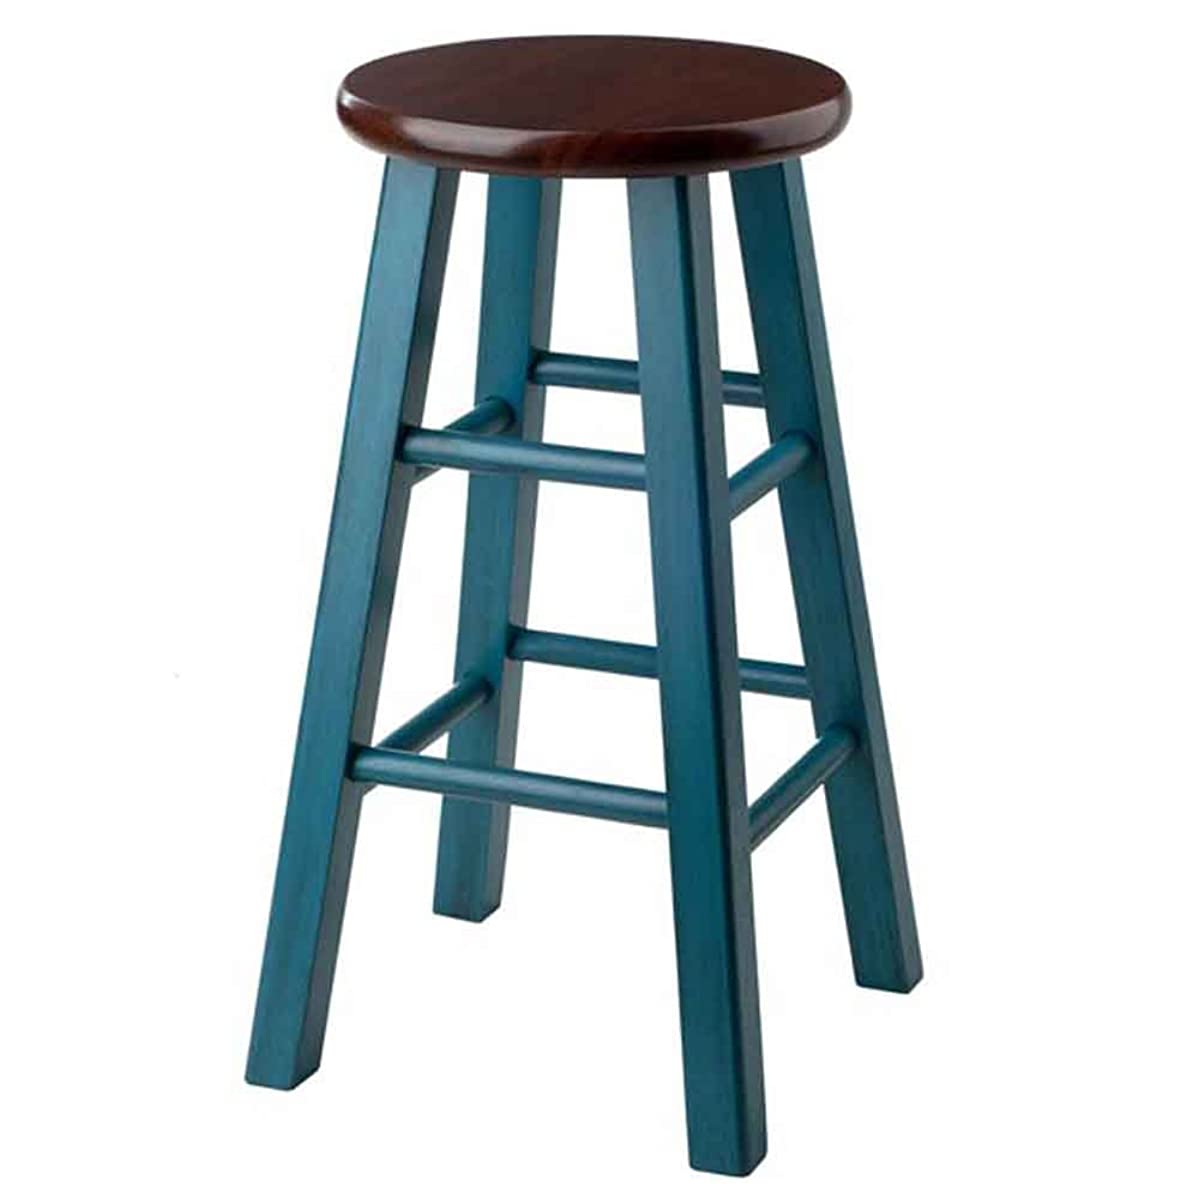 Winsome Wood 62224-WW Ivy Model Name Stool Rustic Teal/Walnut